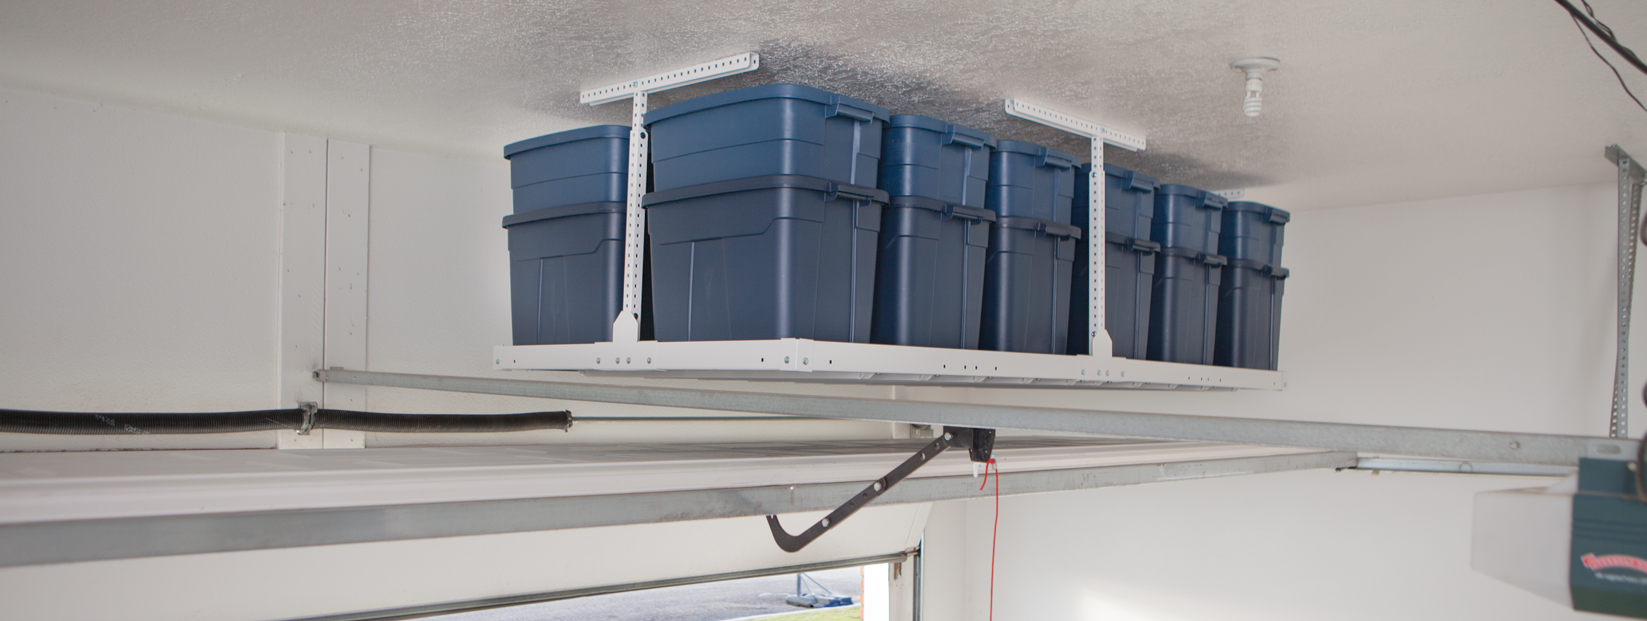 Garage Overhead Storage Houston